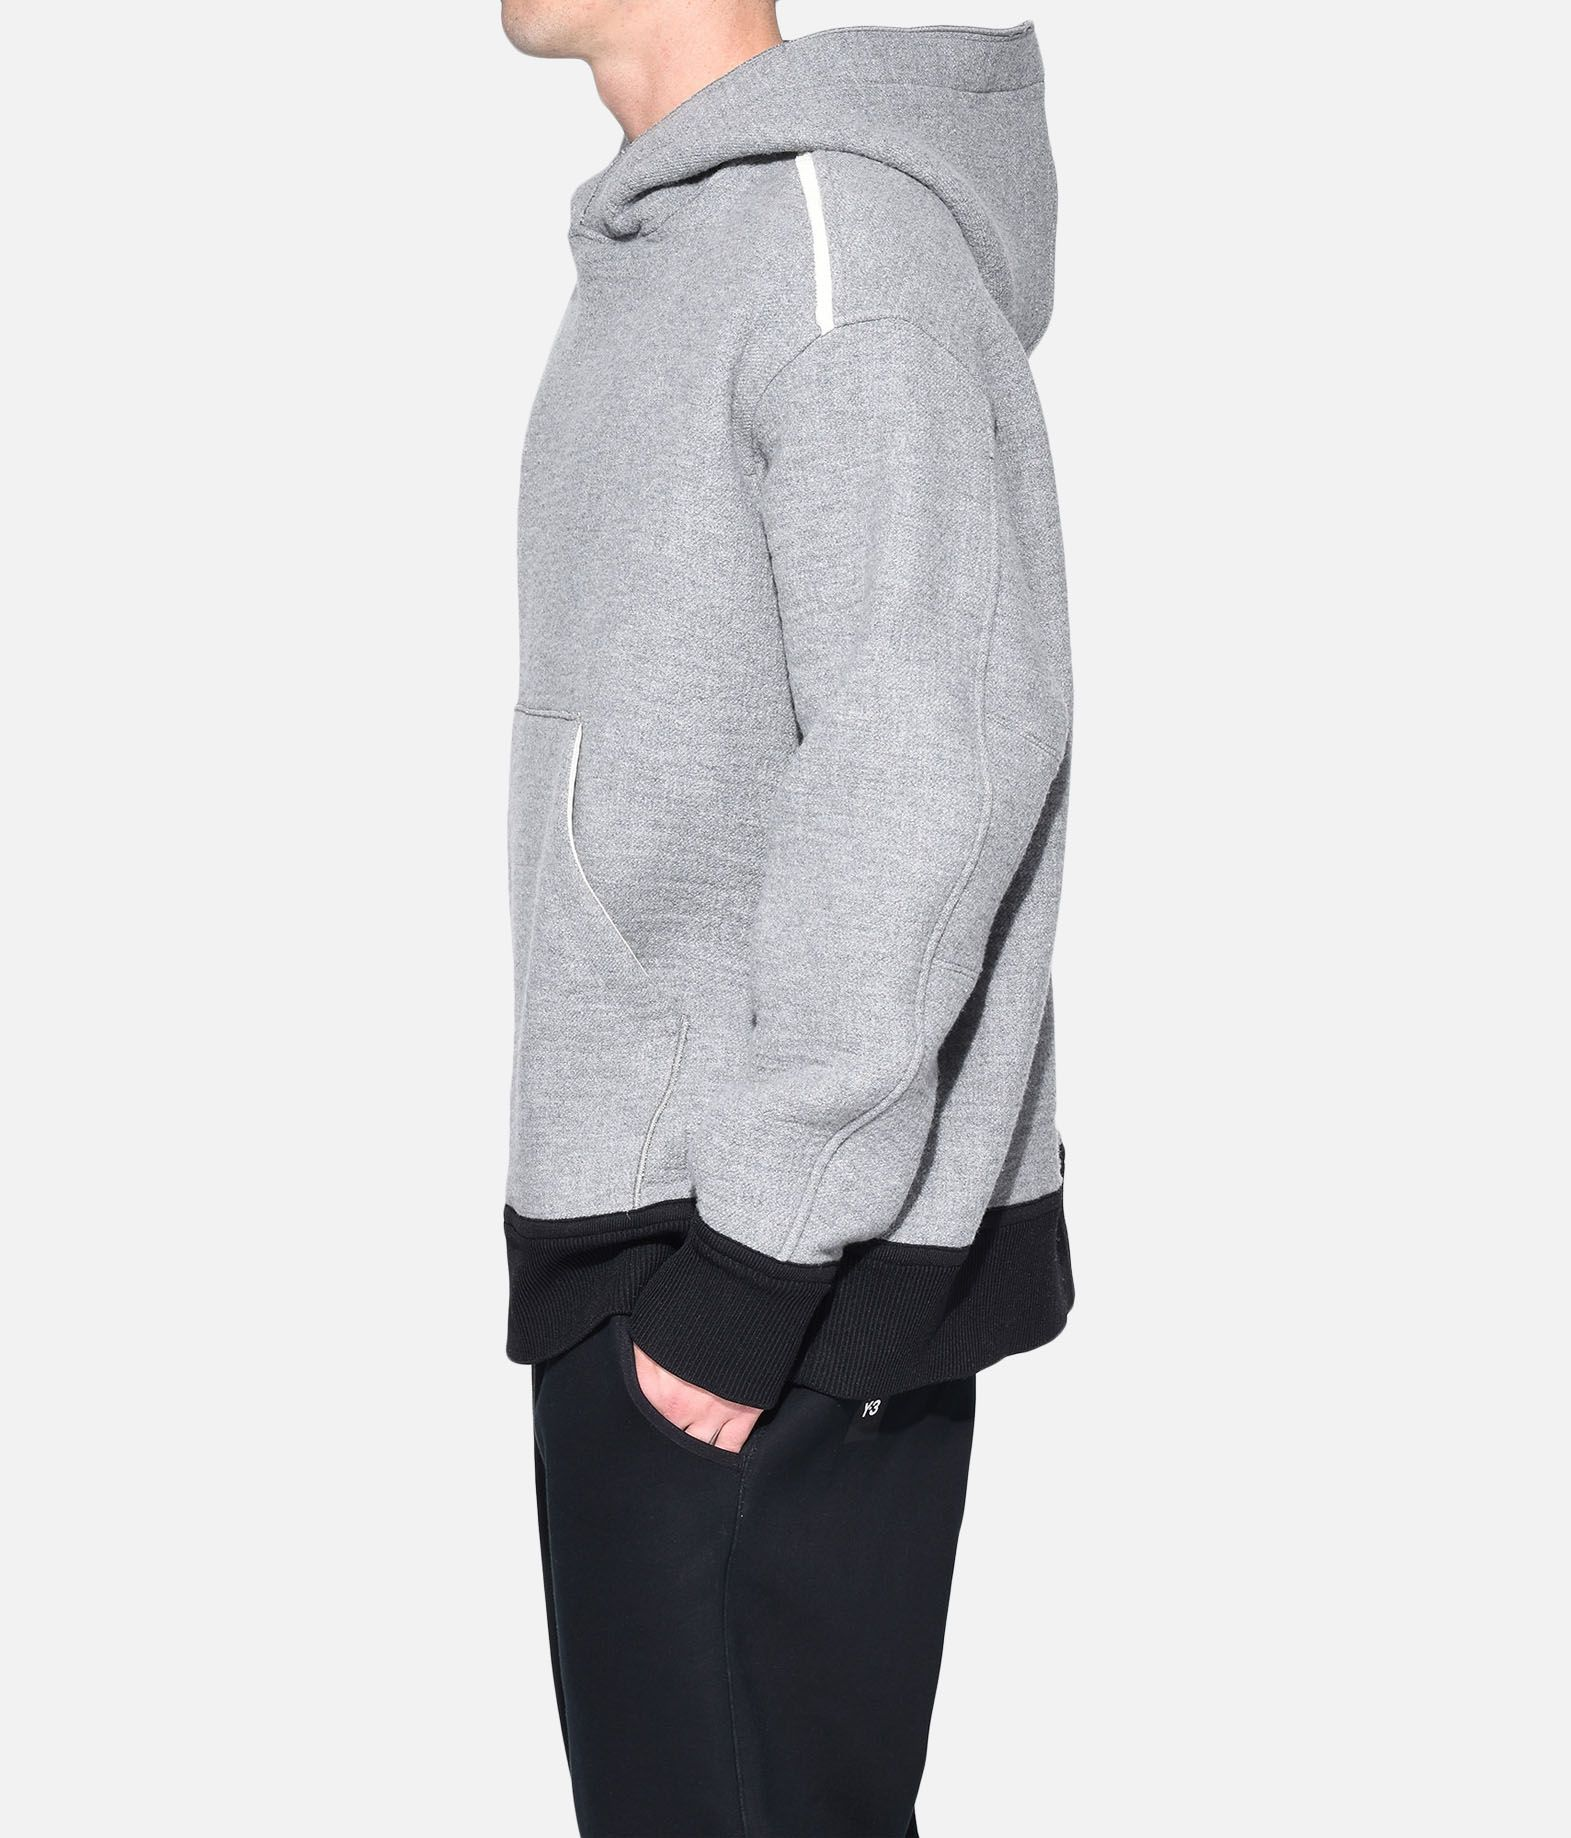 Y-3 Y-3 Spacer Wool Hoodie Hooded sweatshirt Man e